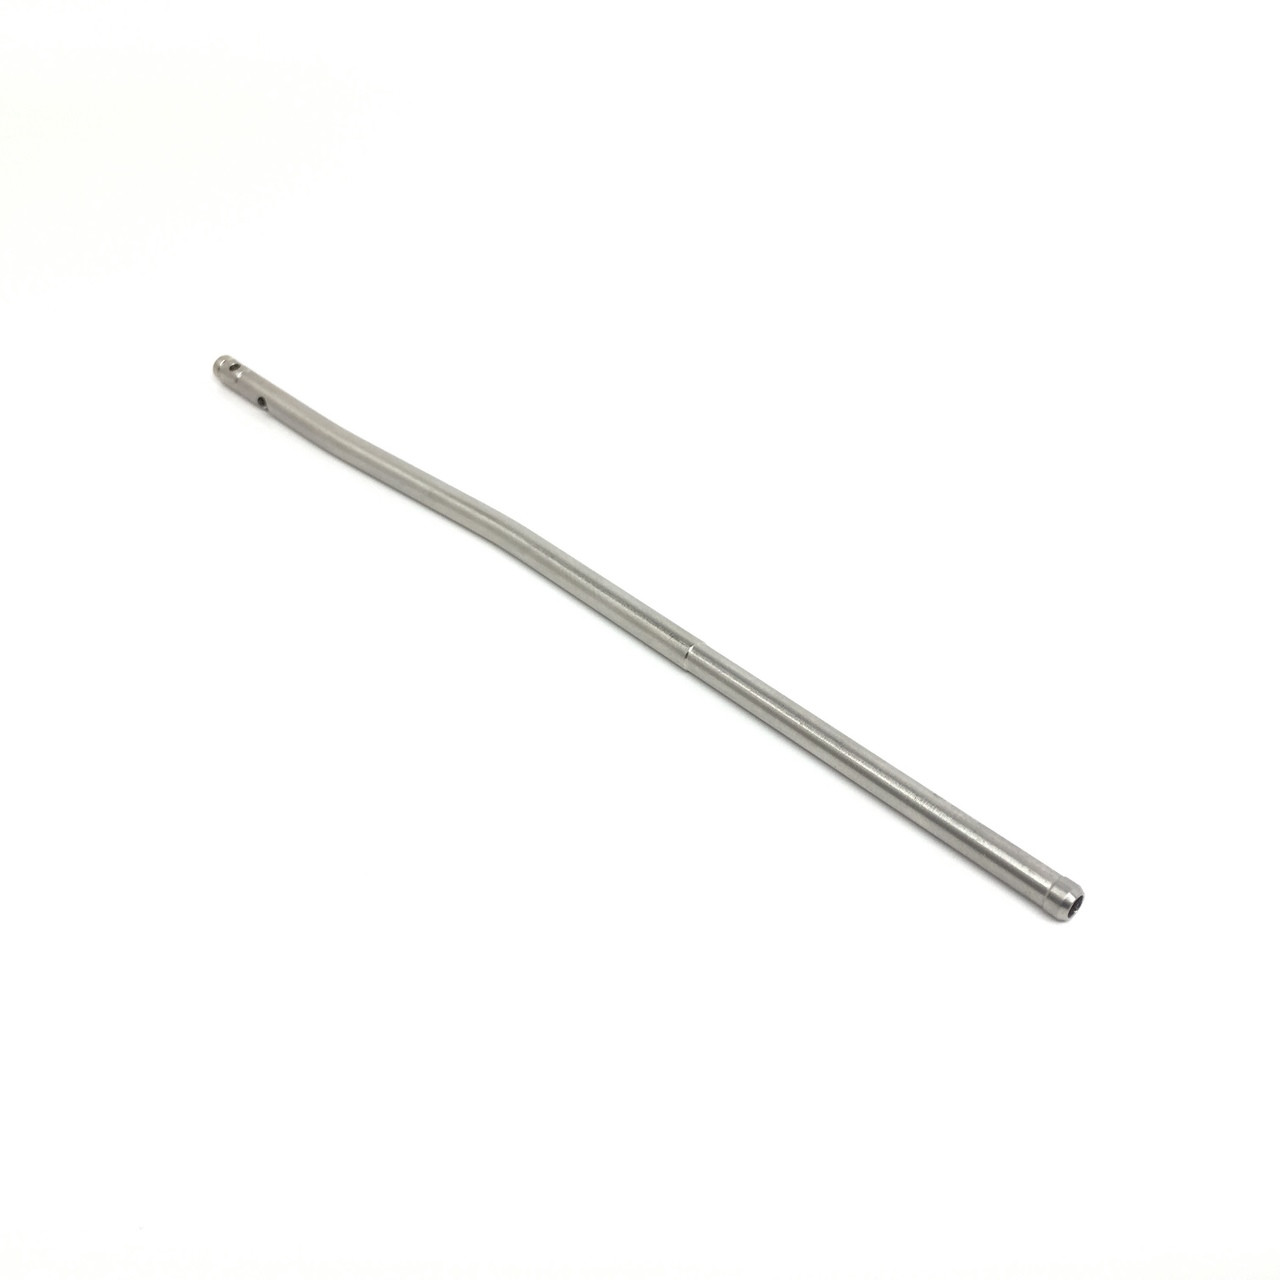 SS Pistol Length Gas Tube